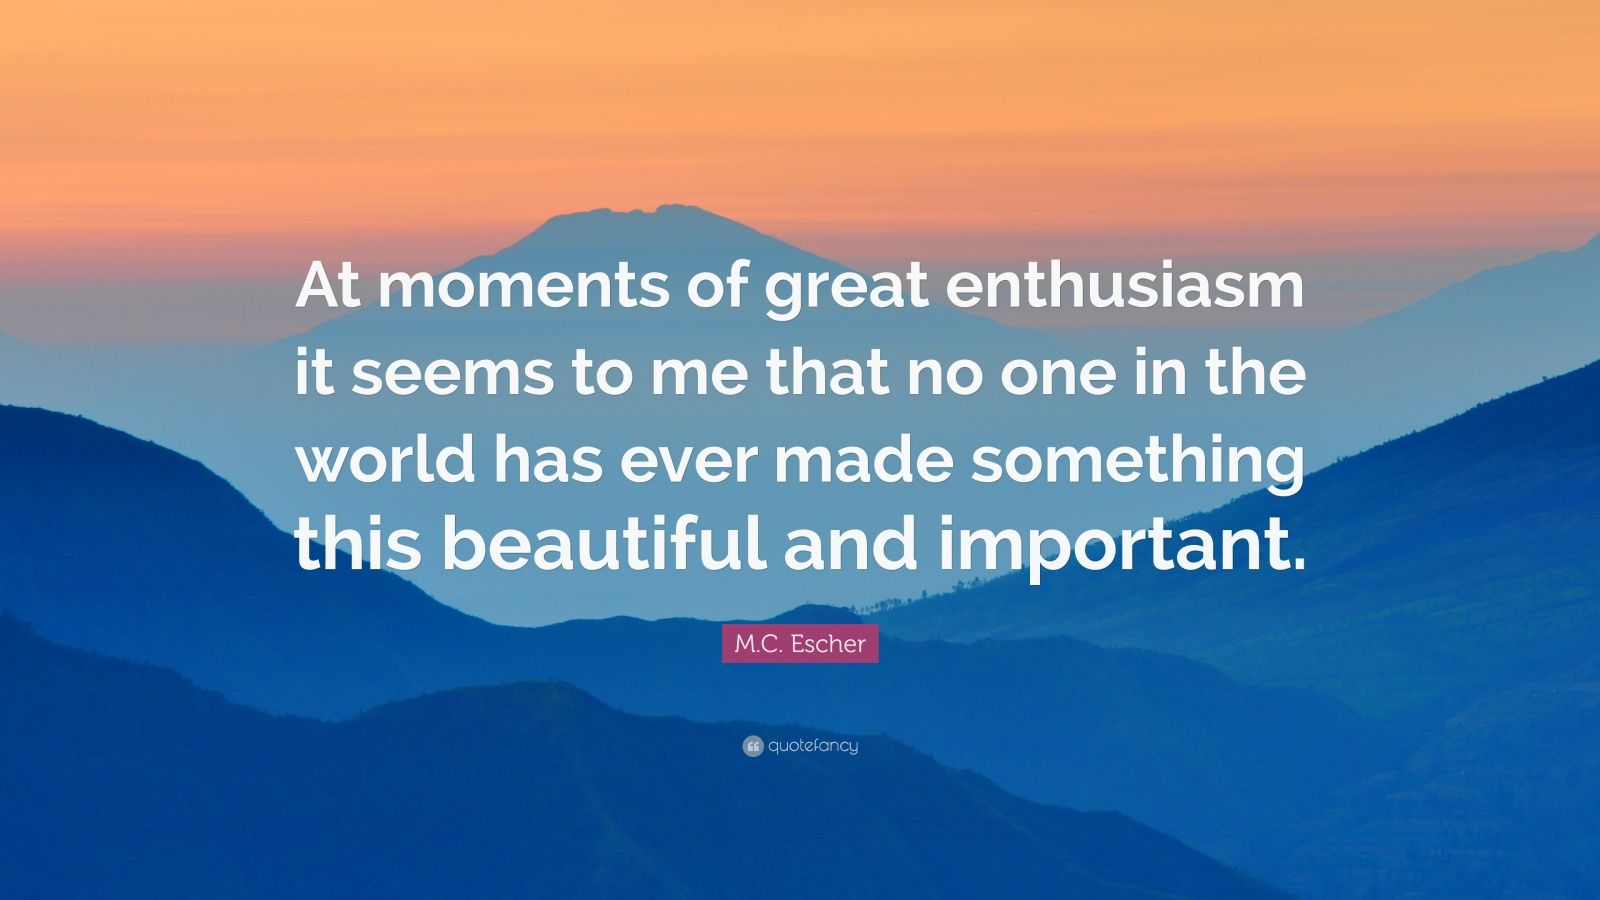 """M.C. Escher Quote: """"At moments of great enthusiasm it seems to me that no one in the world has ever made something this beautiful and important."""""""